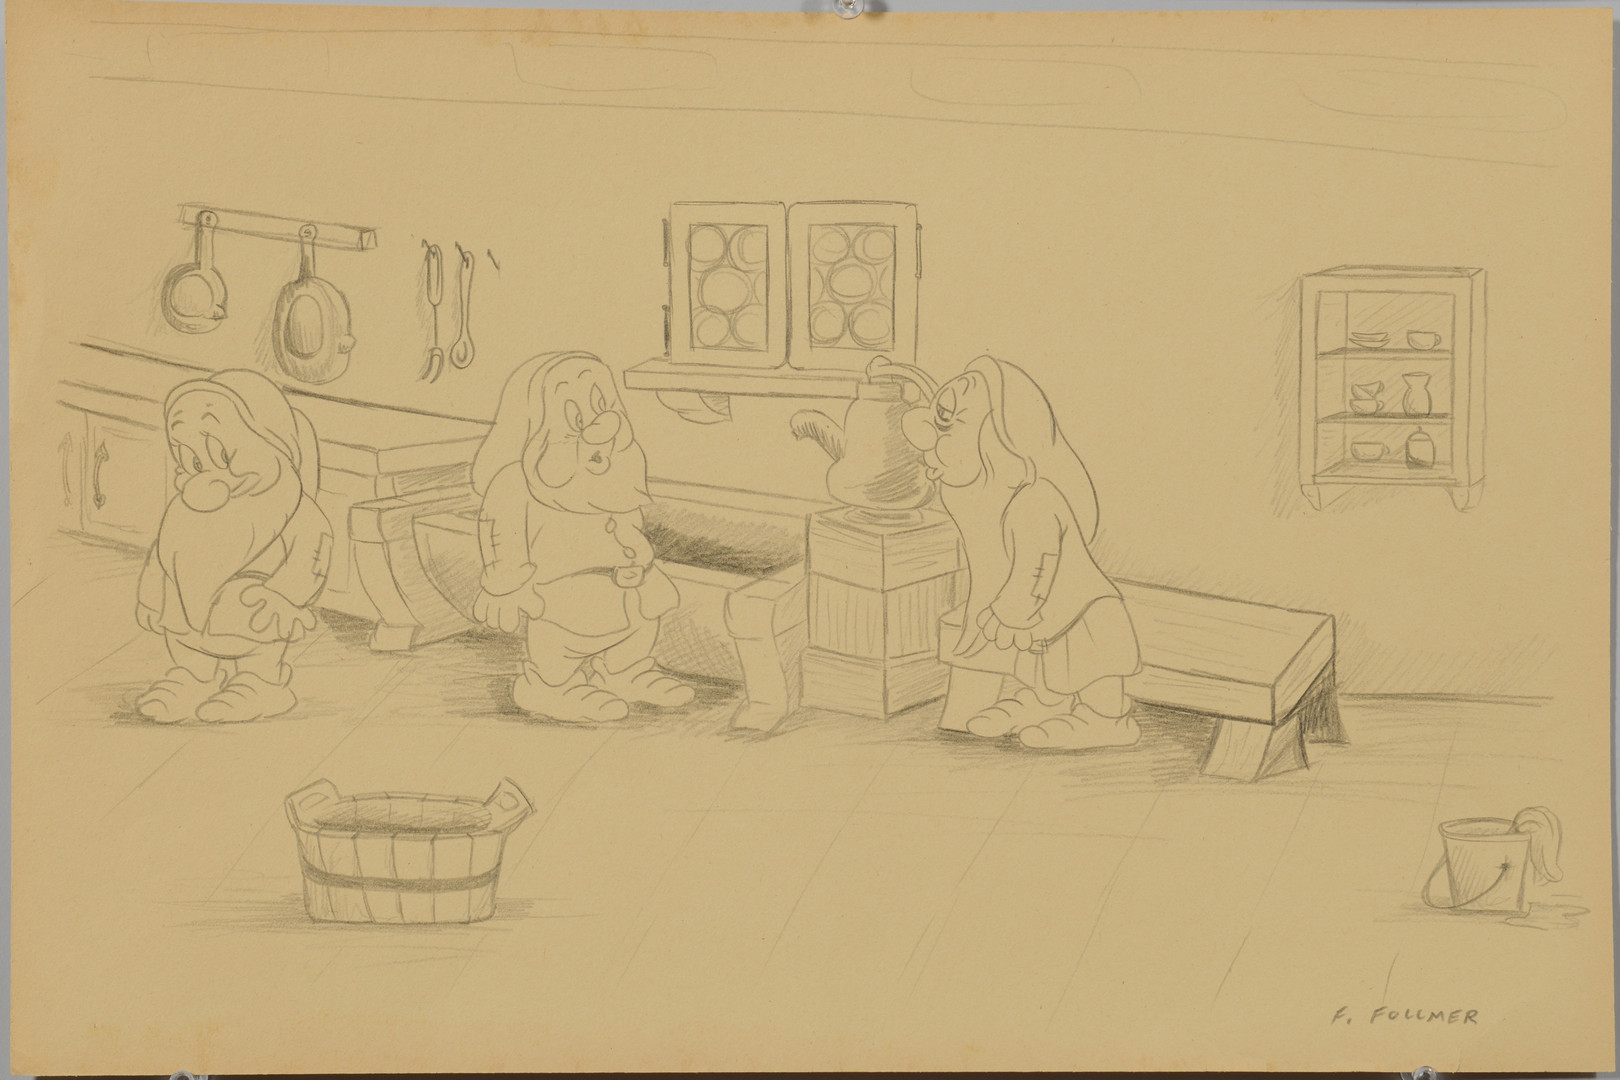 Lot 911: F. Follmer, 2 Snow White Drawings